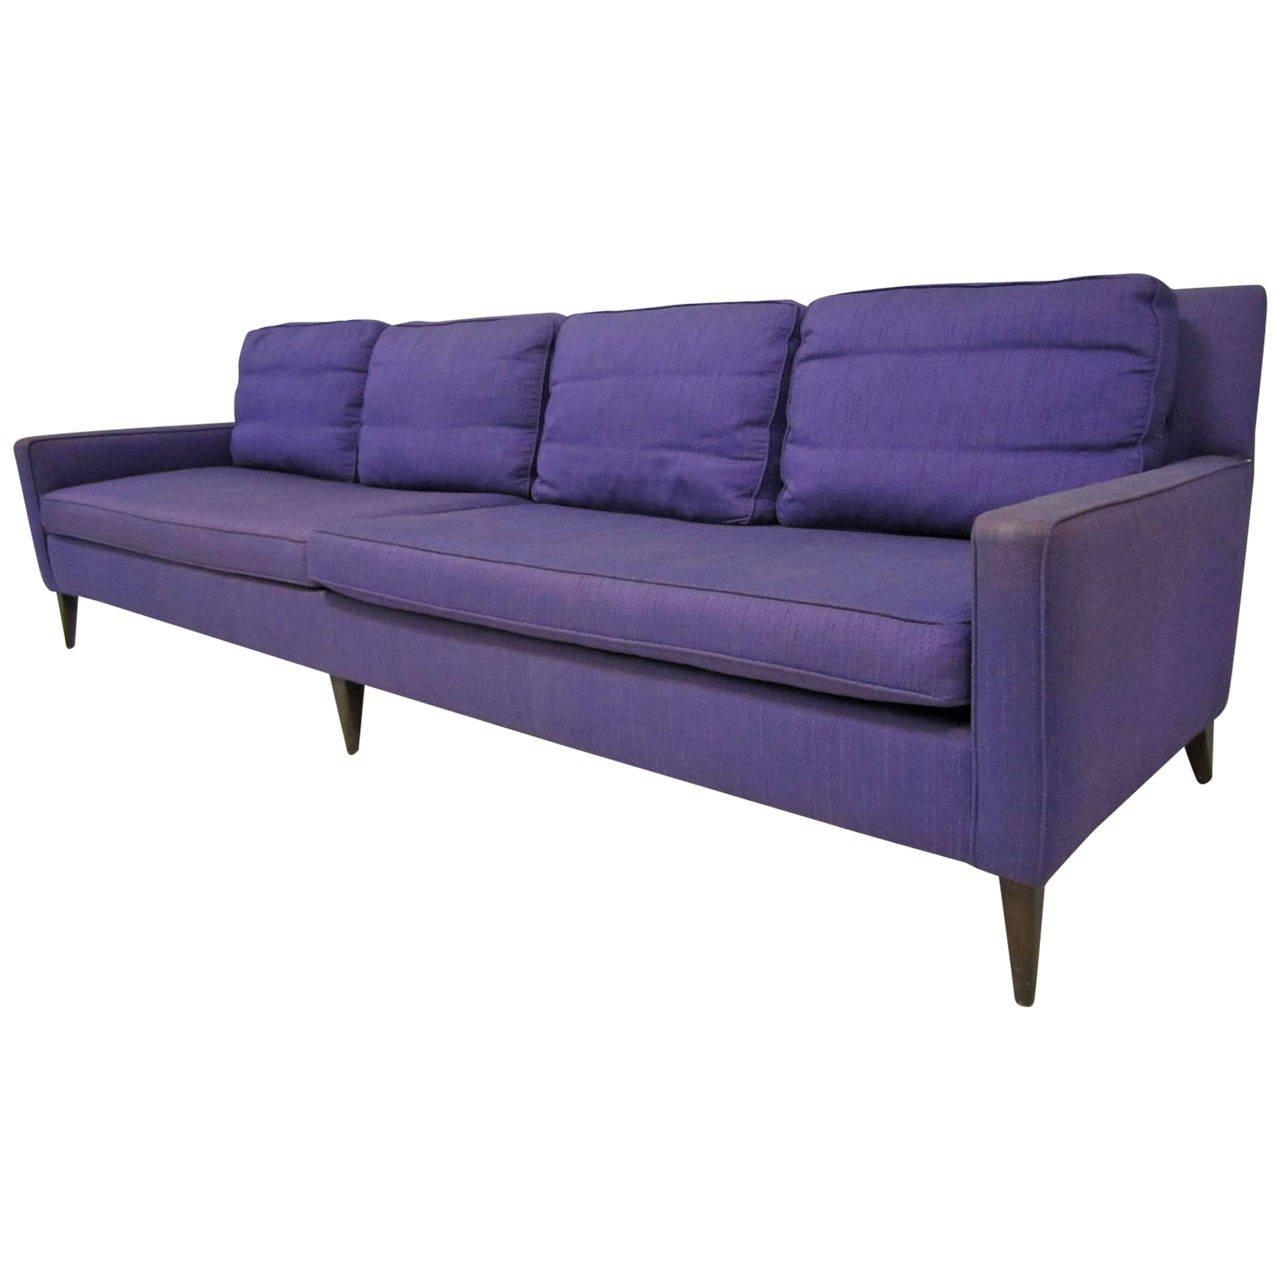 Stunning Signed Paul Mccobb Long Sofa, Mid Century Modern For Sale Inside Florence Knoll Wood Legs Sofas (View 14 of 20)